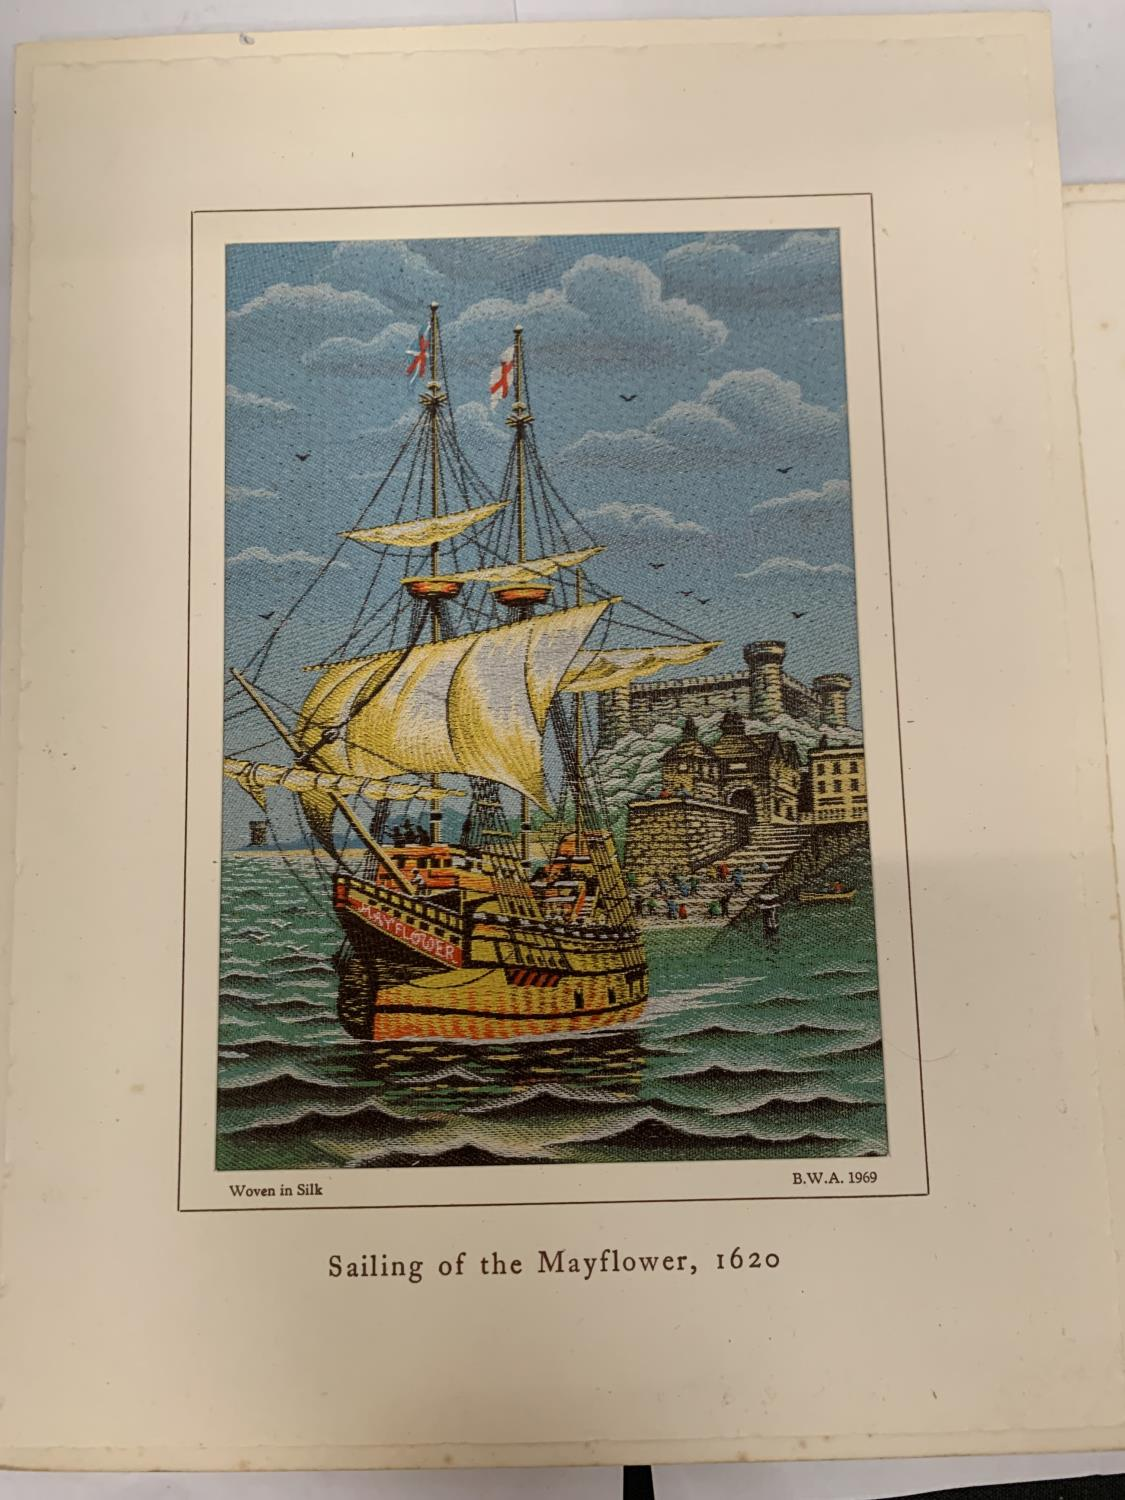 TWO BROCKLEHURST-WHISTON MACCLESFIELD MOUNTED SILKS - SAILING OF THE MAYFLOWER 1620 AND THE HOUSE OF